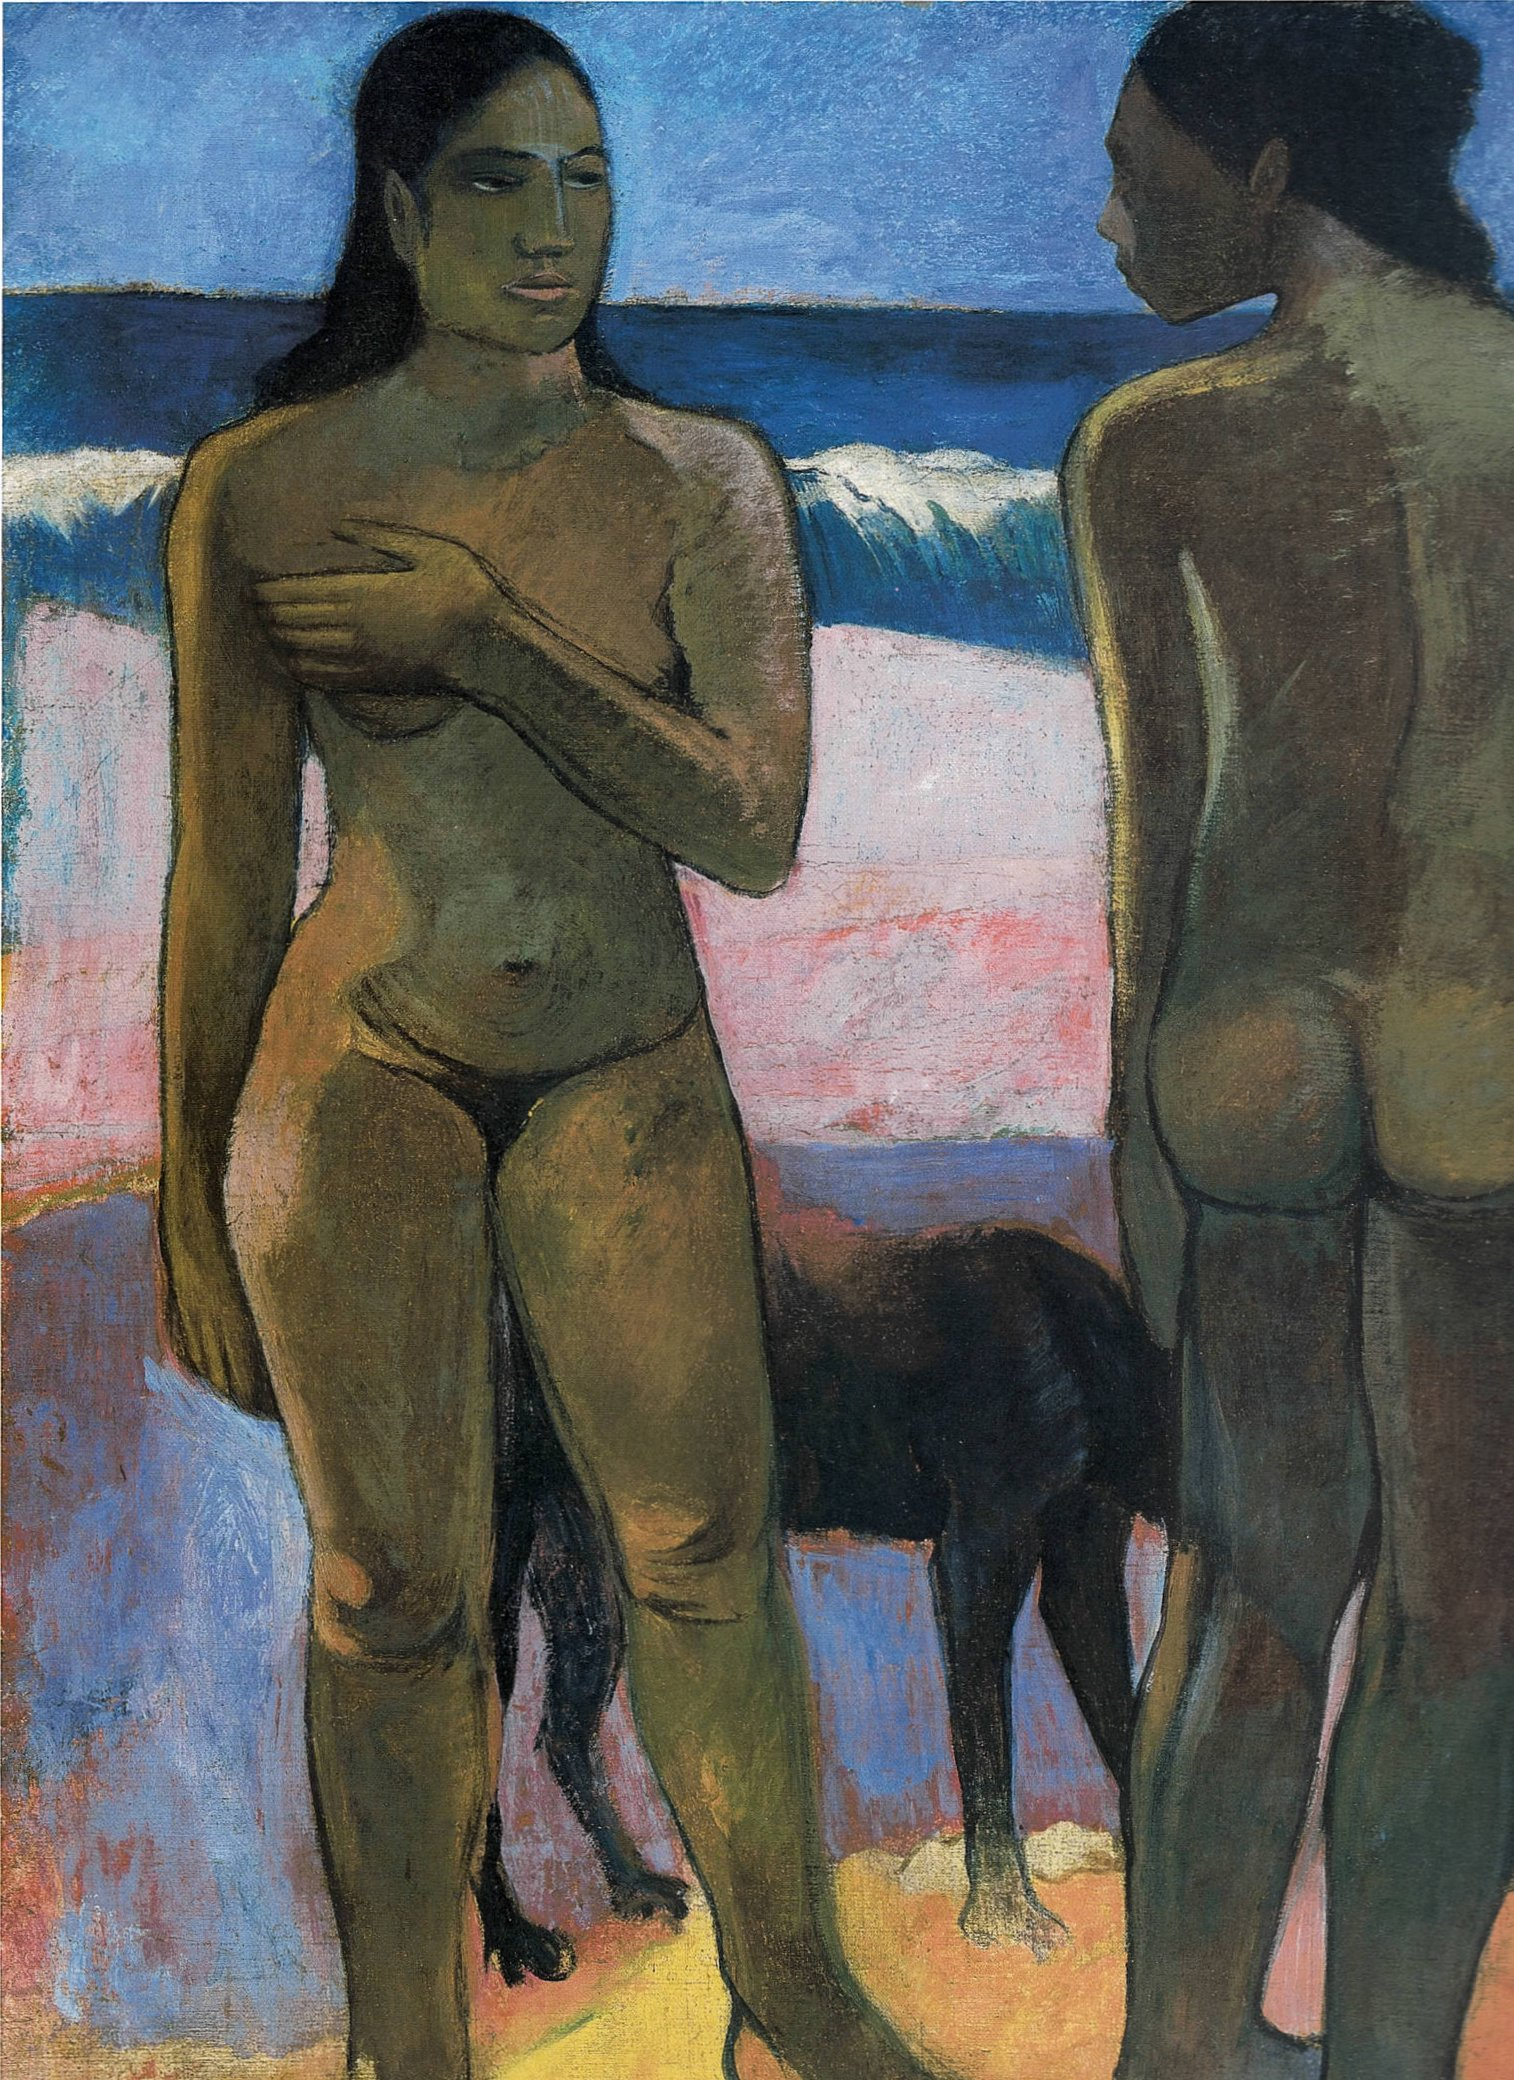 Paul Gauguin [Public domain], via Wikimedia Commons